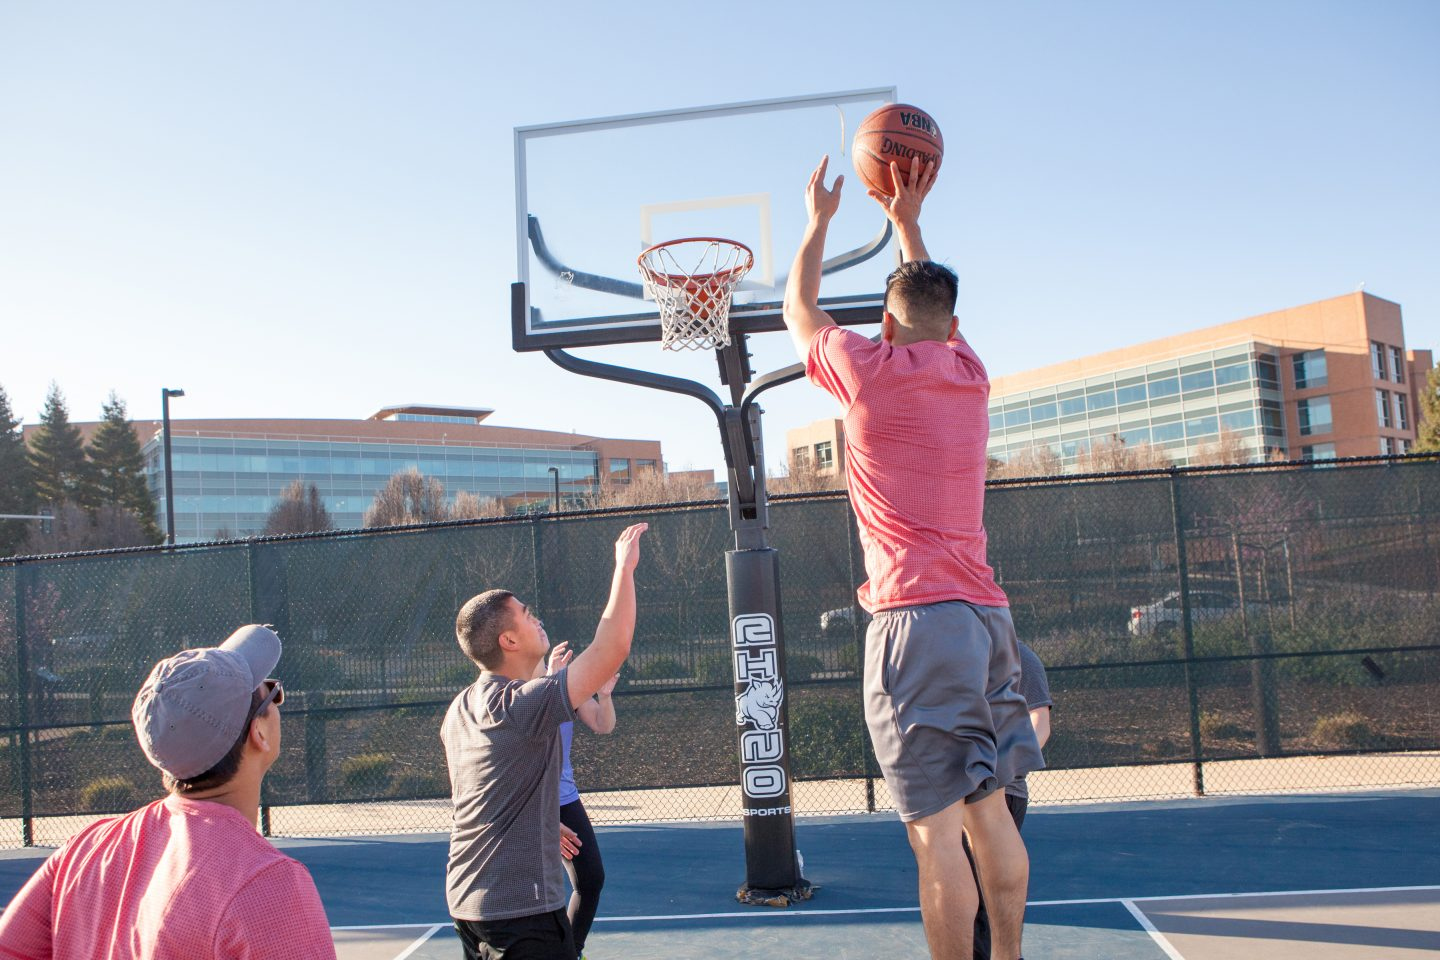 Four men play basketball in a basketball court and one of the men jumps in the air to make a shot. basketball, team, team sport, sport, hobby.